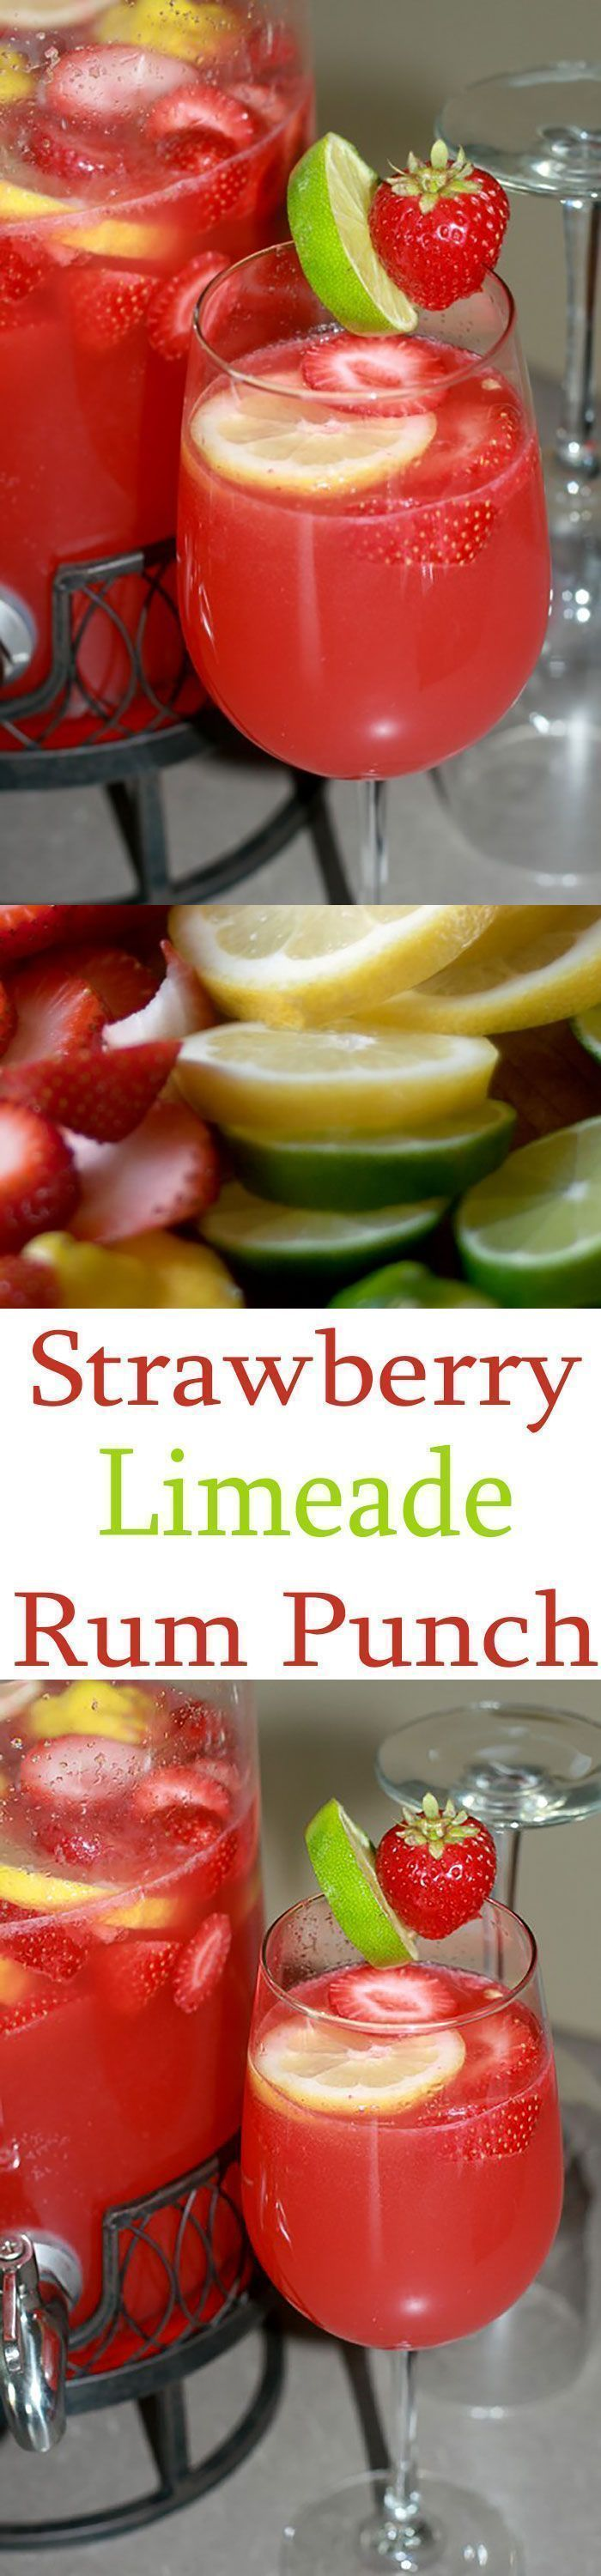 Strawberry Limeade Rum Punch is the ultimate party punch. Your friends will be raving about it and asking you for the recipe. | www.AllSheCooks.com | #partypunch